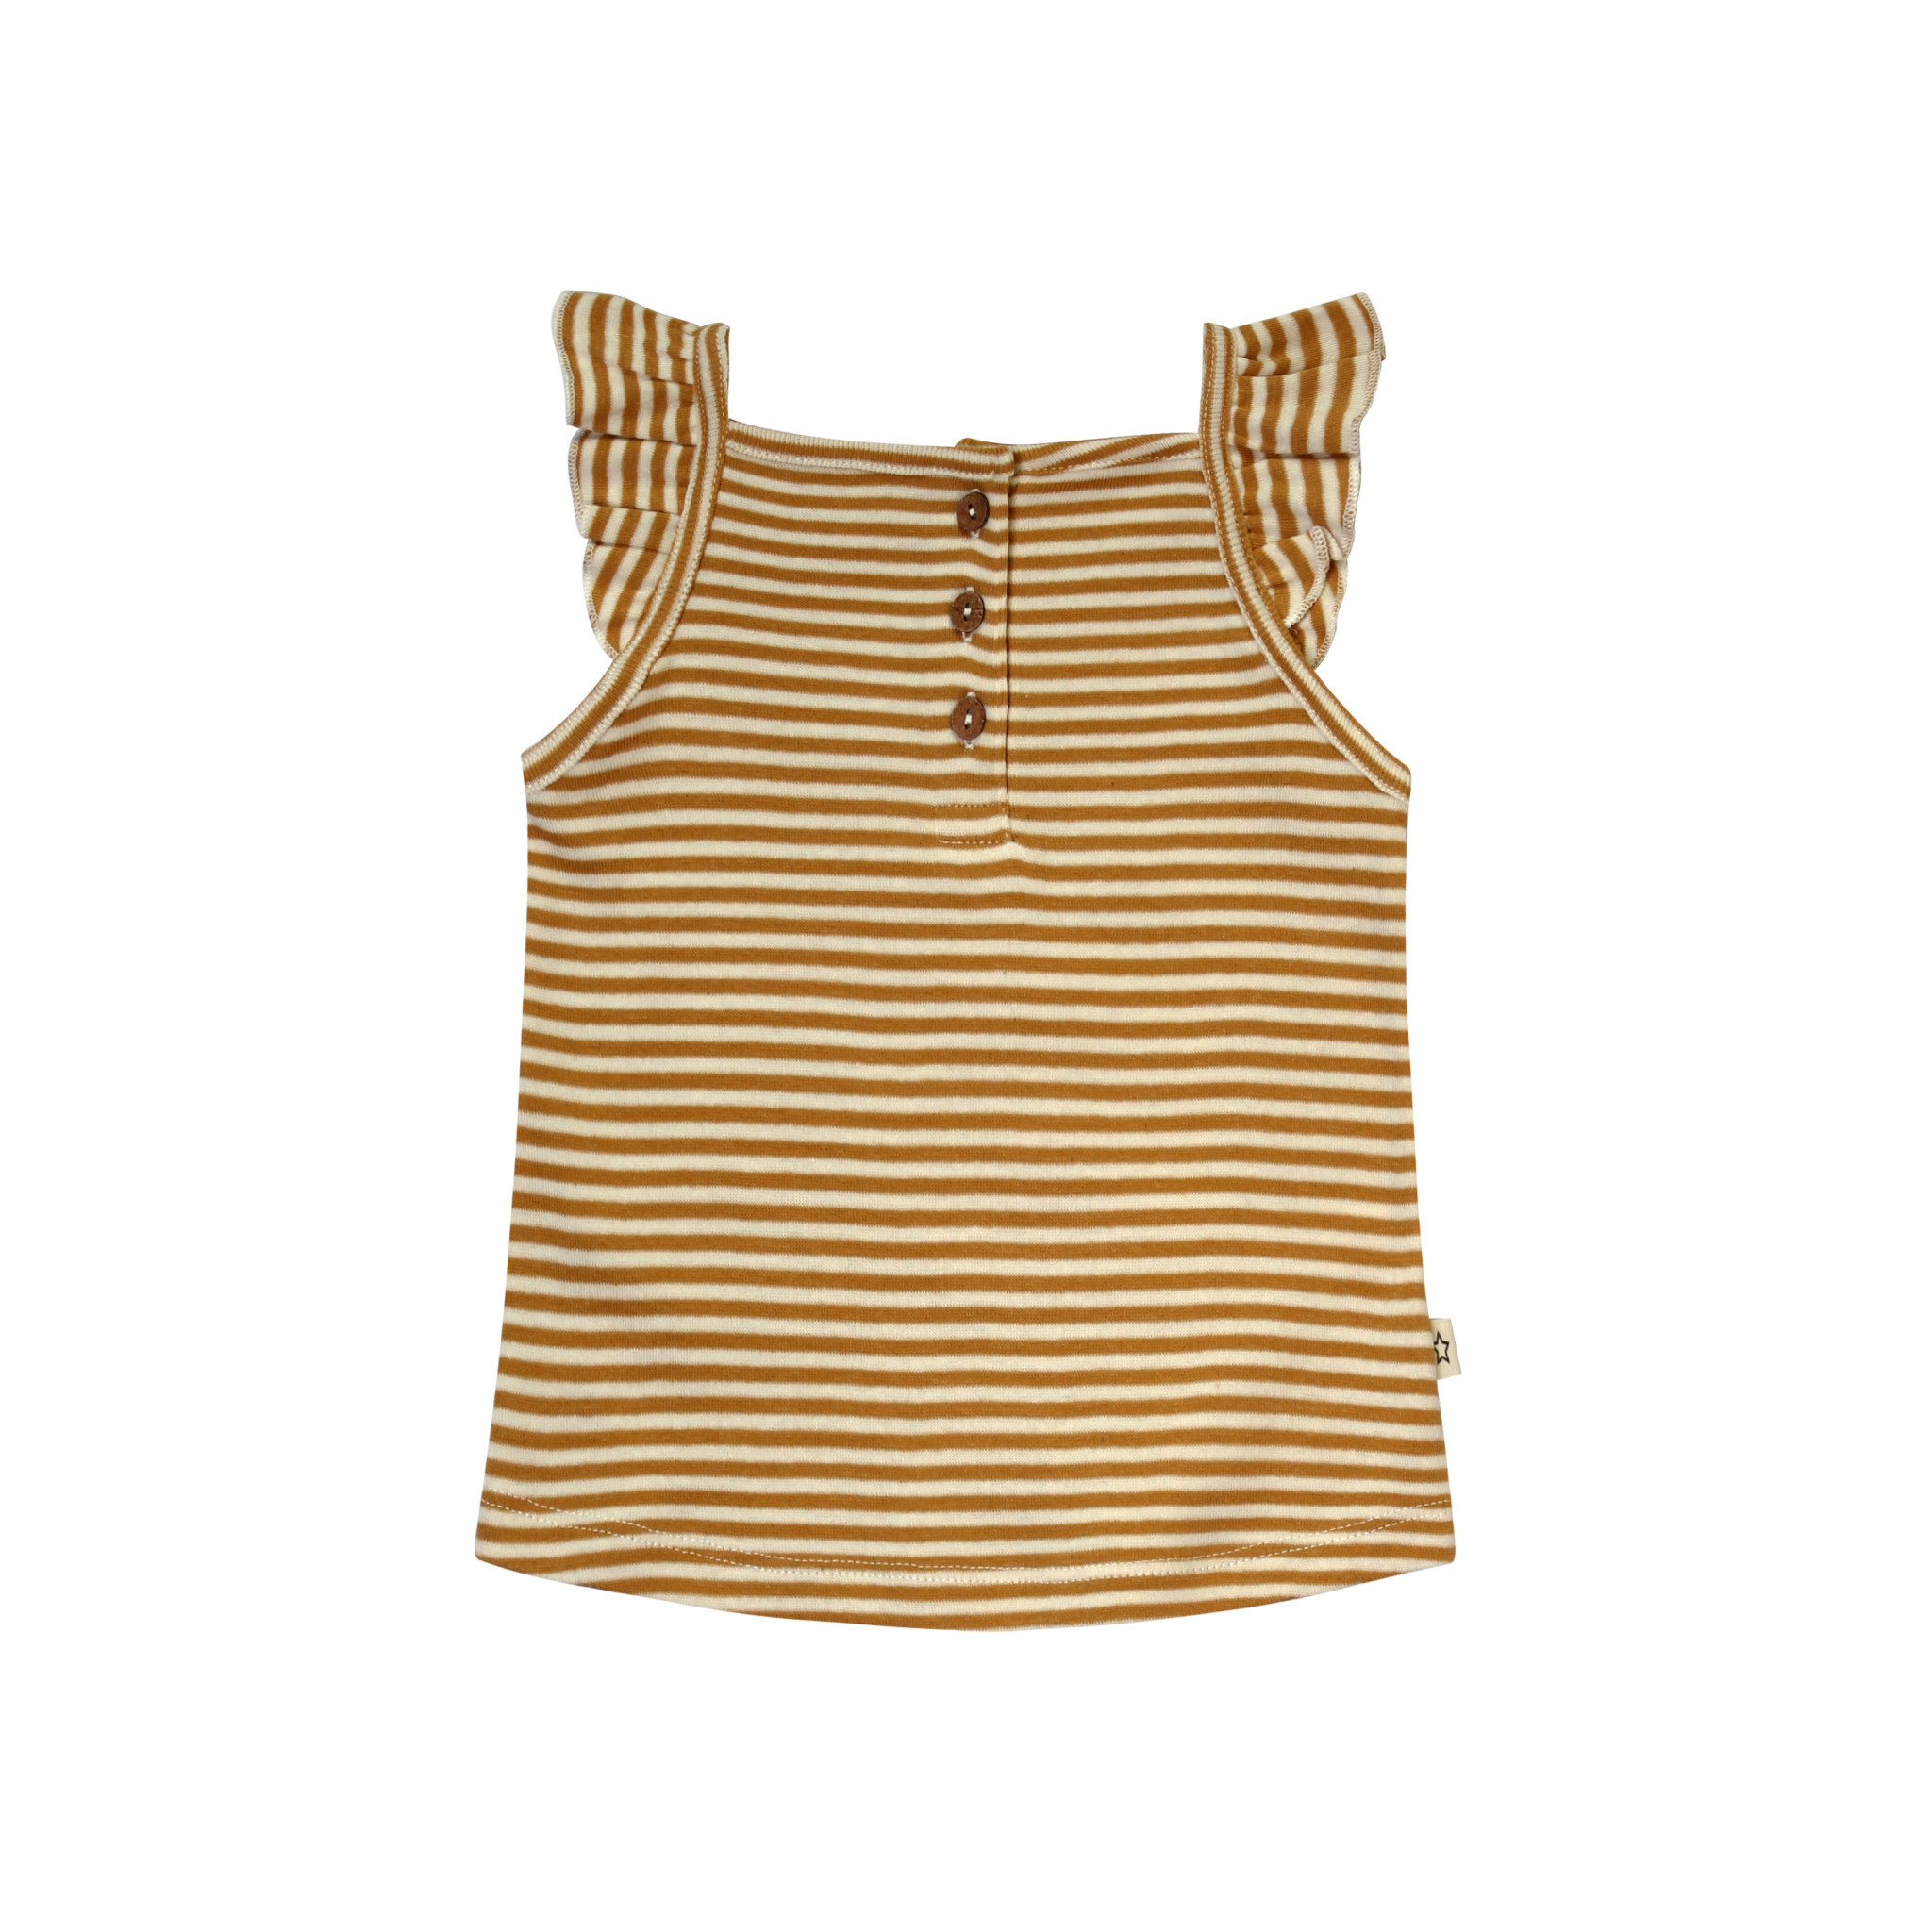 Your Wishes Gold Stripes Ruffle Singlet